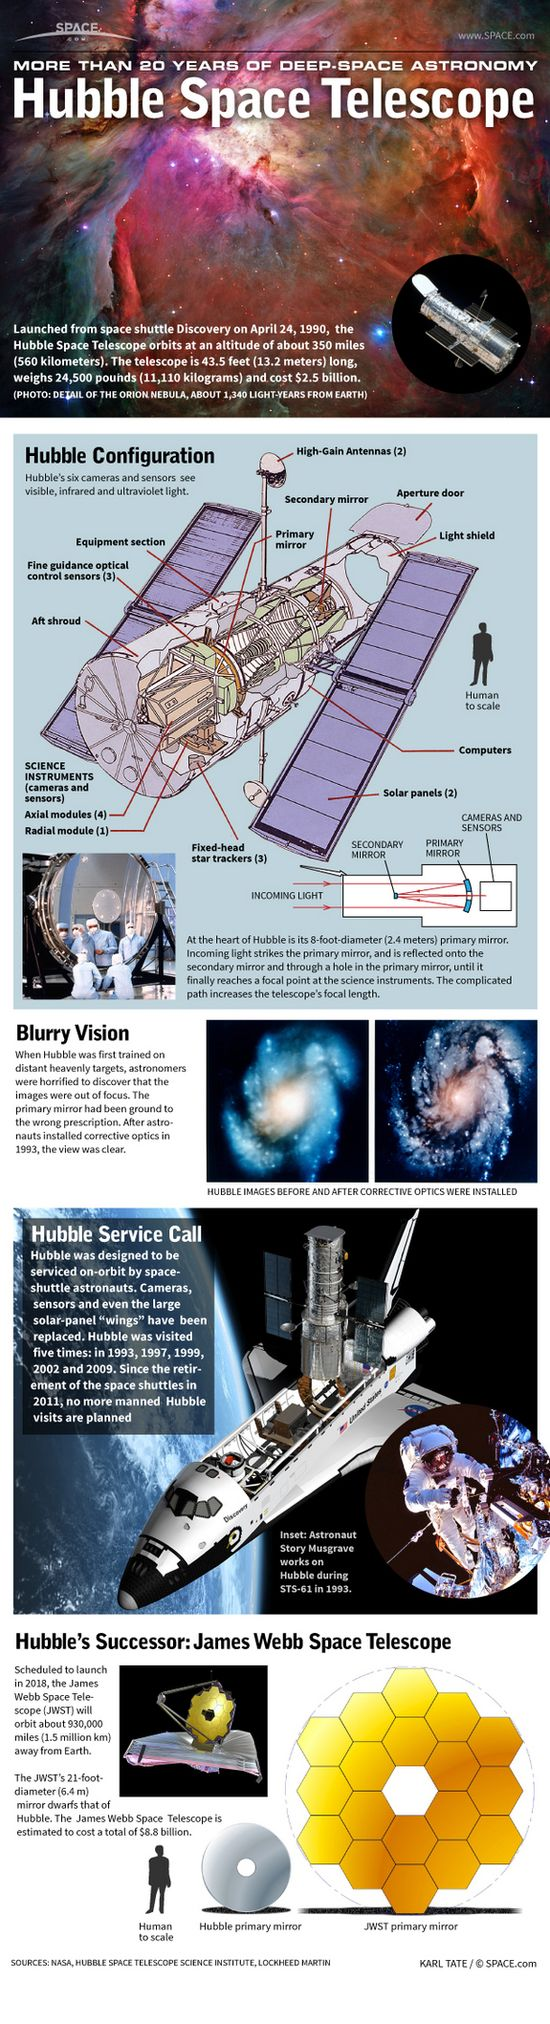 20 Years of Deep-Space Astronomy: How the Hubble Space Telescope Works #Infographic